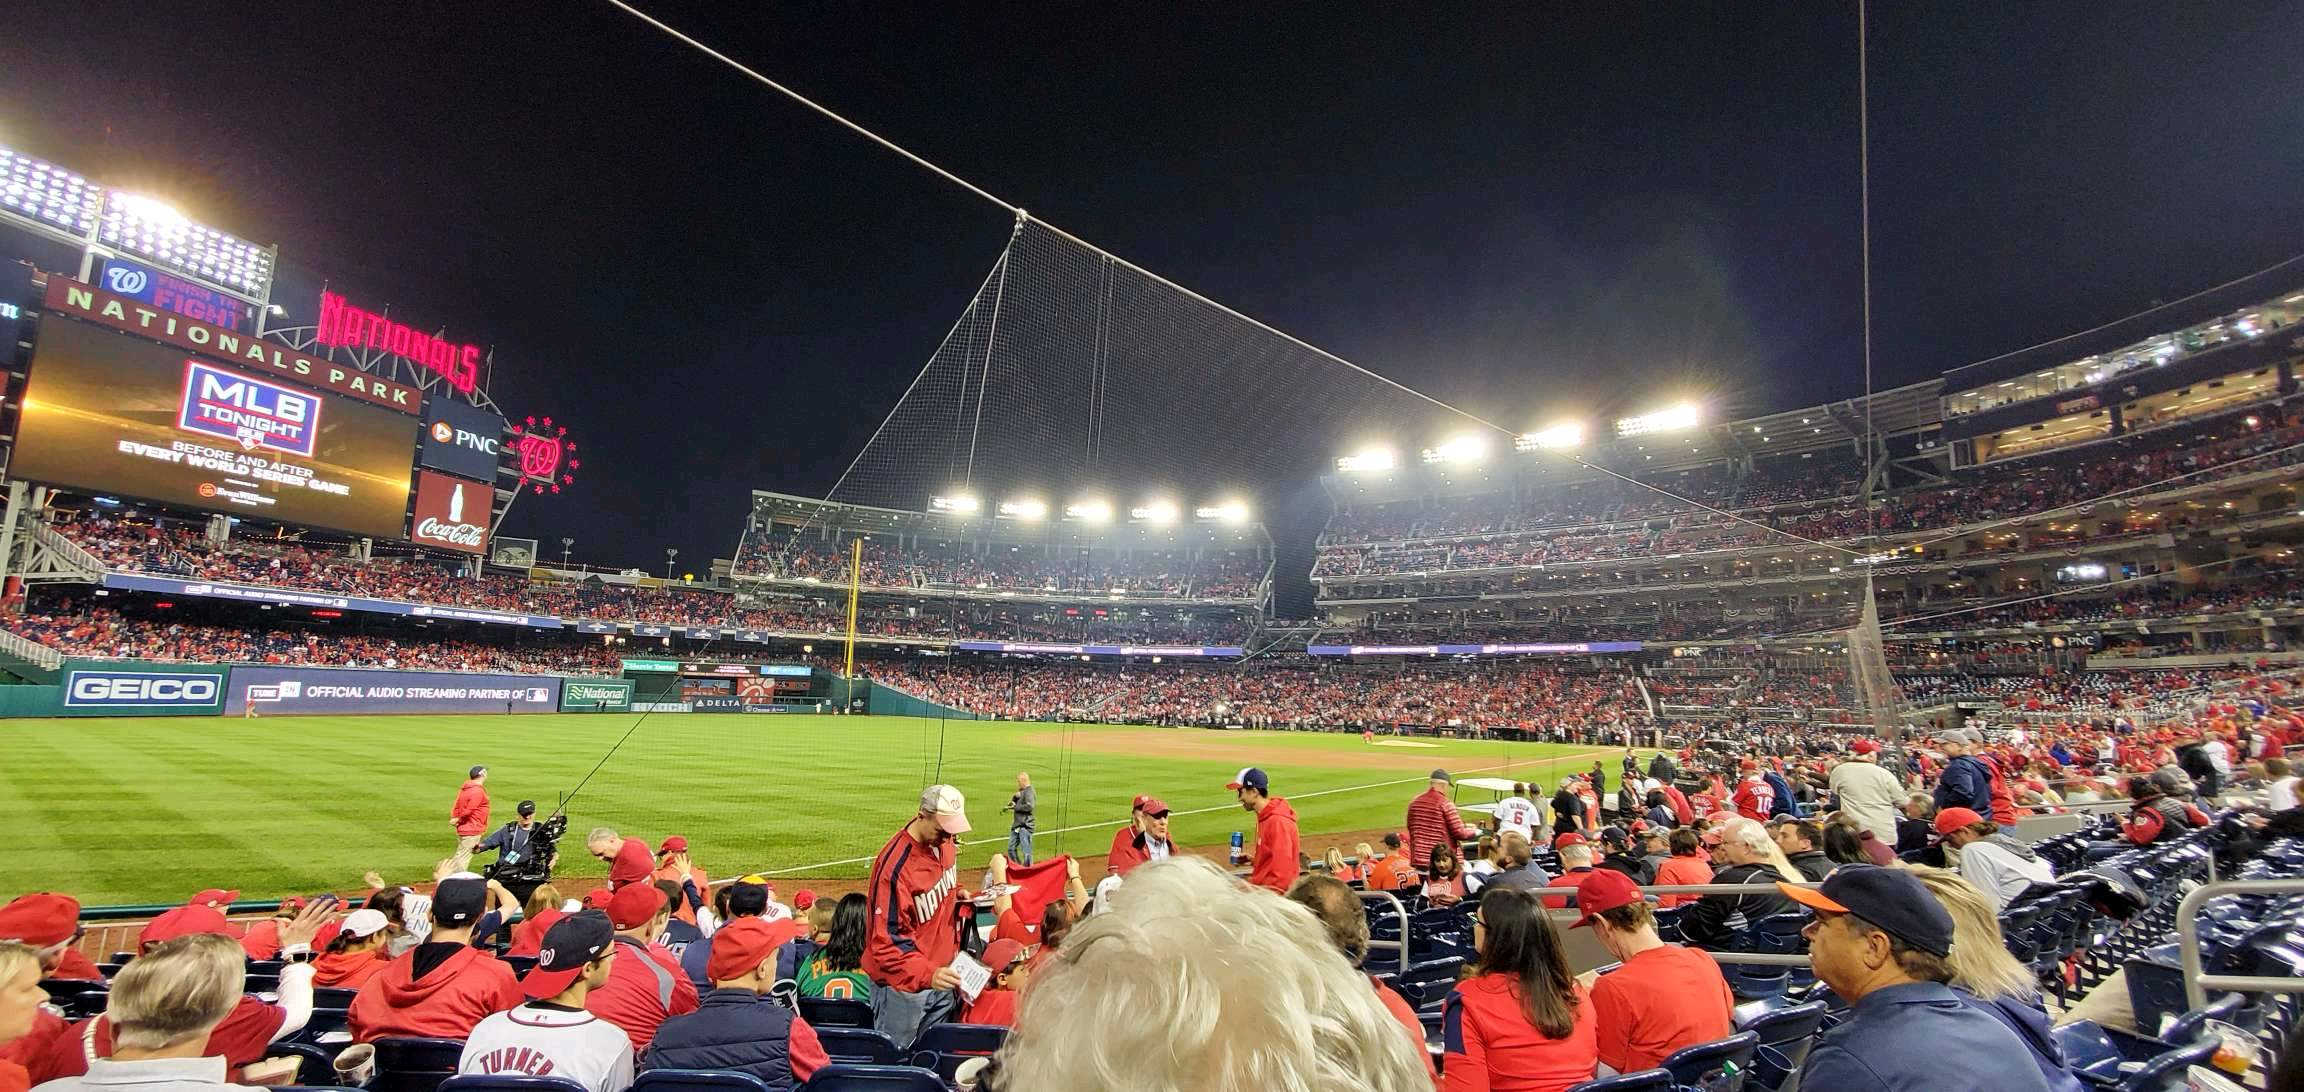 Nationals Park Section 110 Row M Seat 9